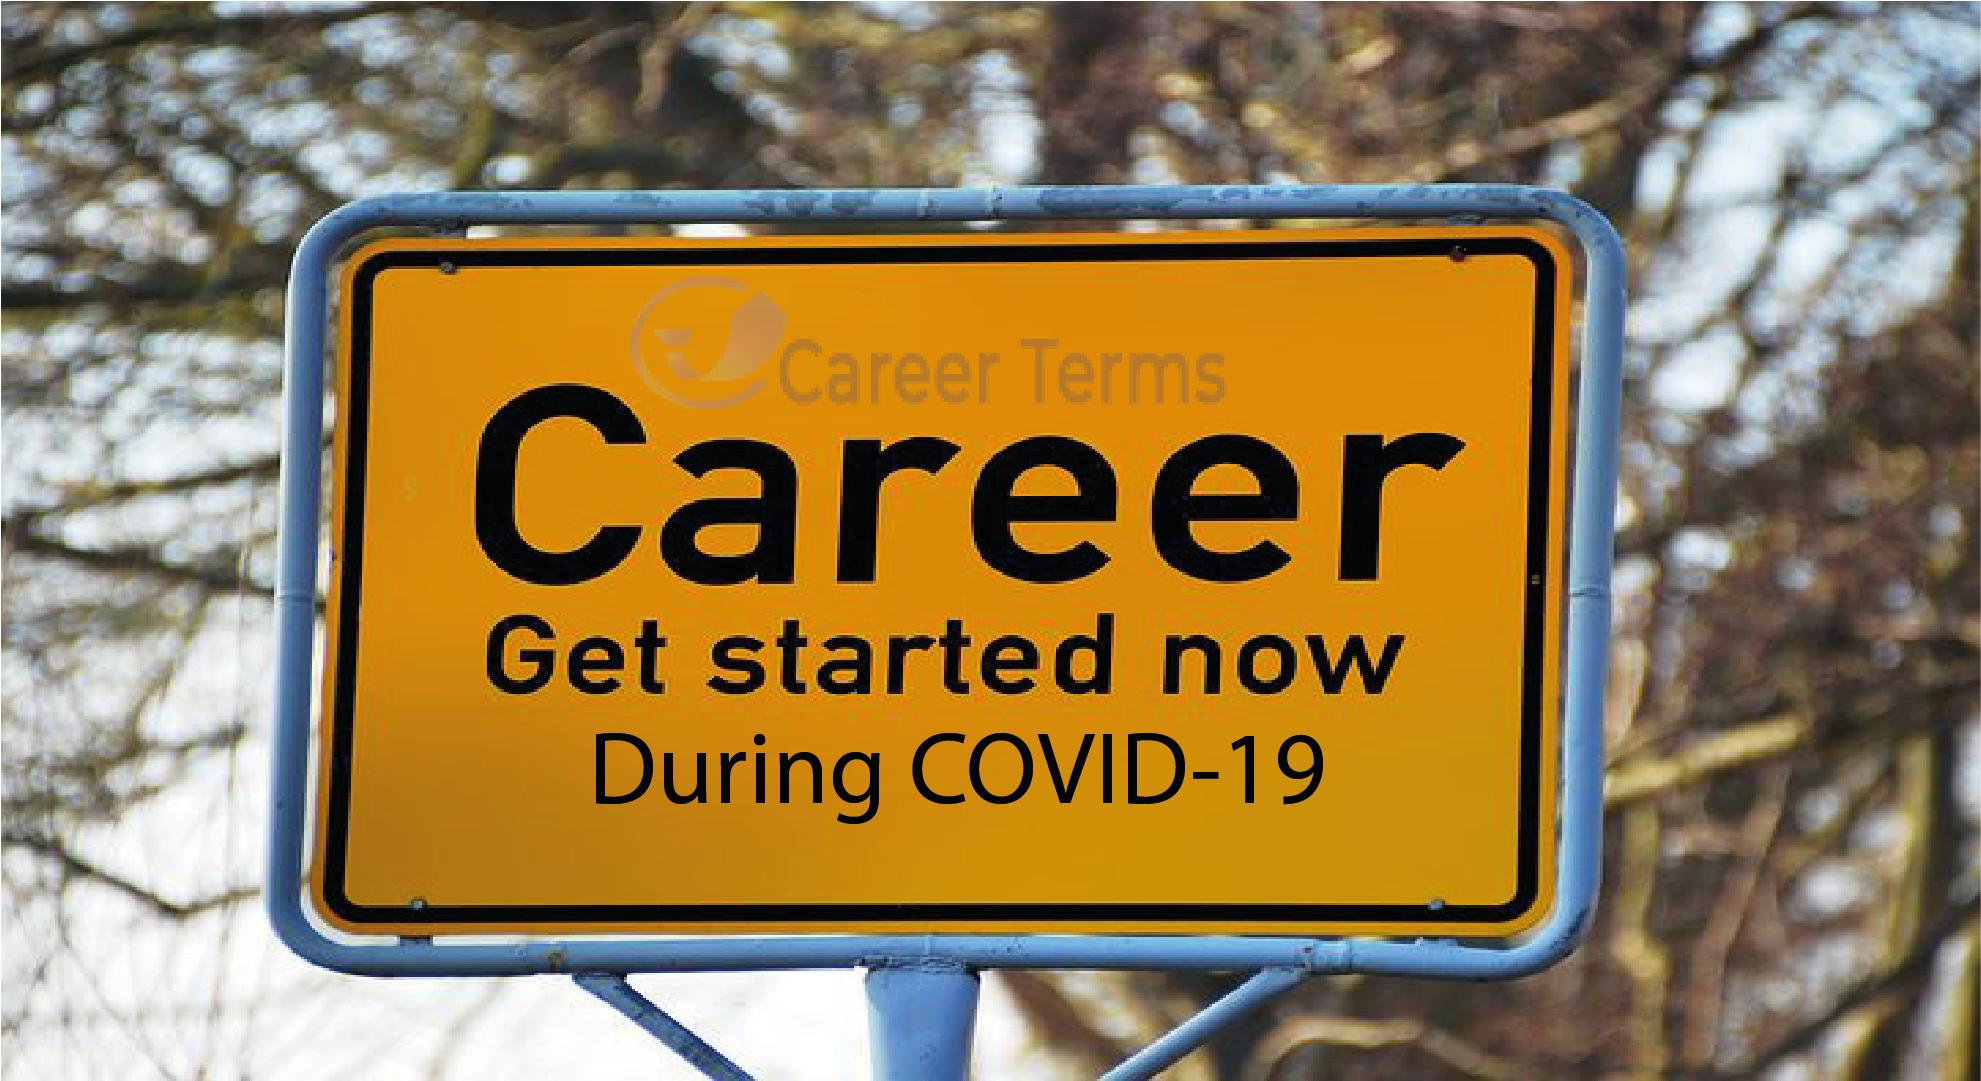 9 Ways to Keep Growing in Your Career